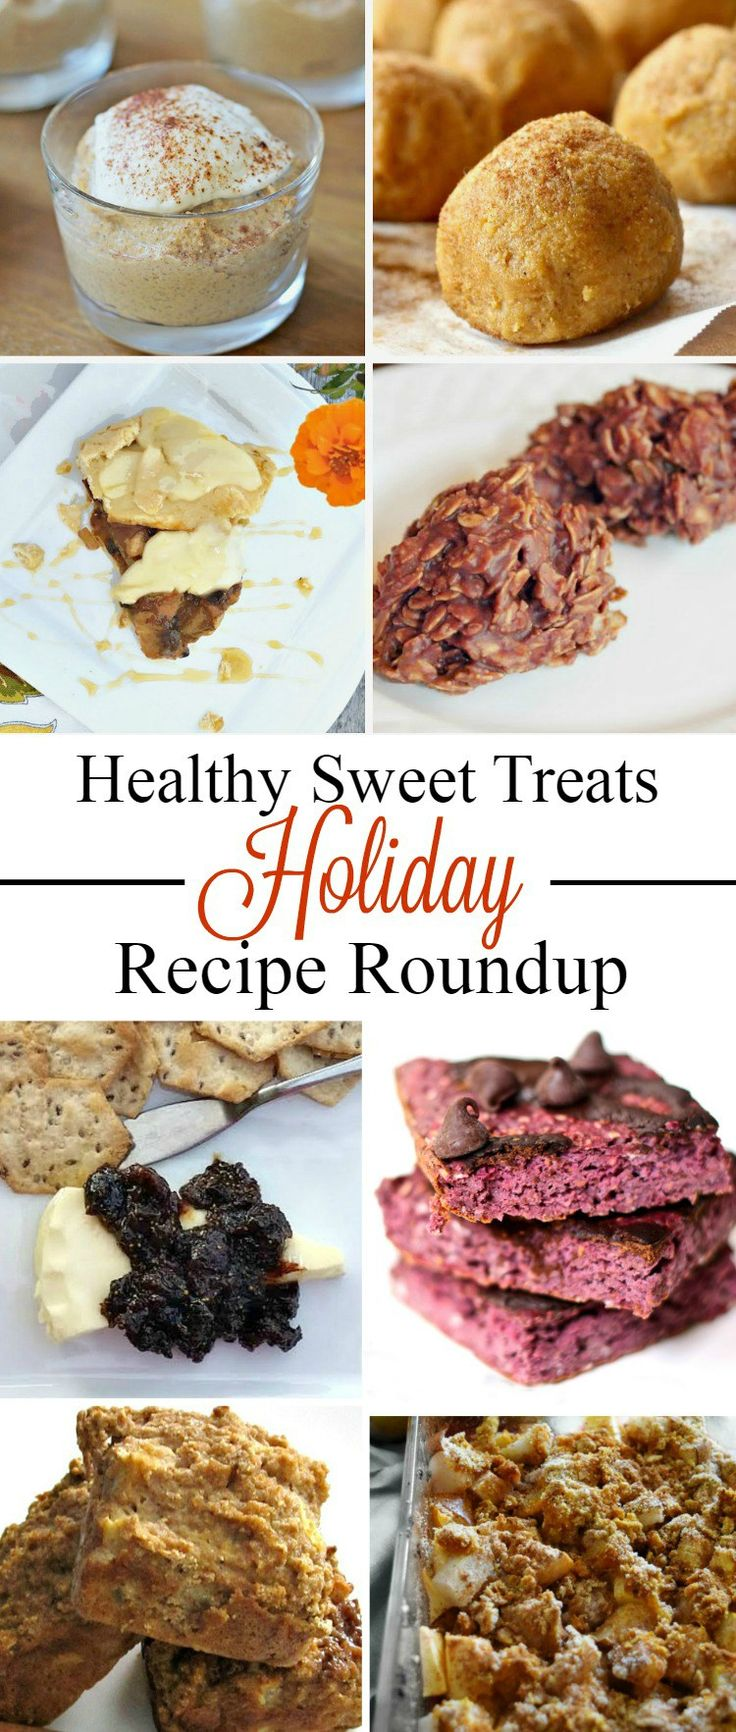 8 Healthy Sweet Treats for the Holidays | Healthy Helper @Healthy_Helper